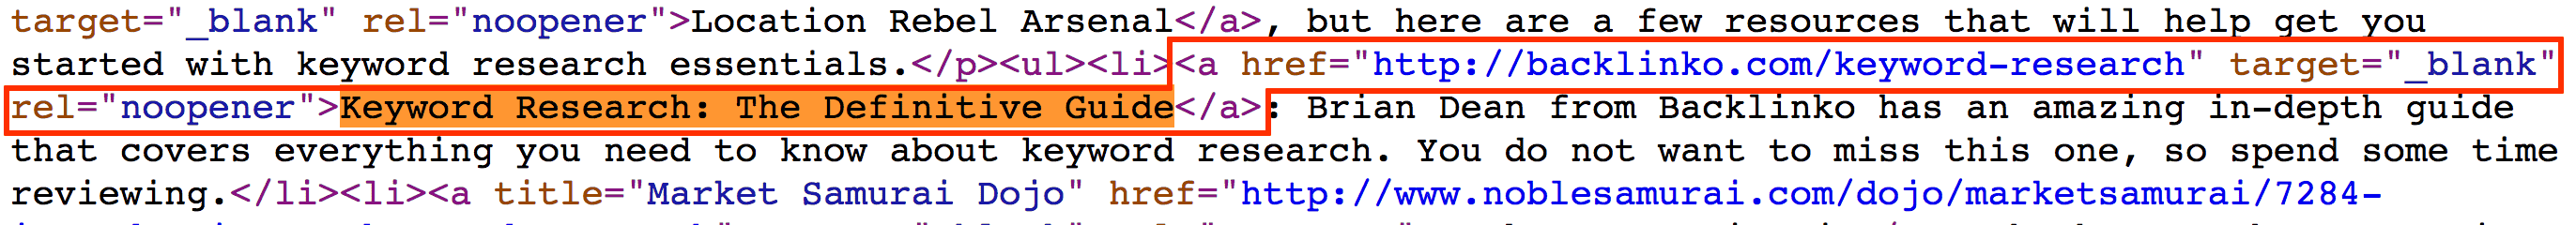 Find link in page's HTML